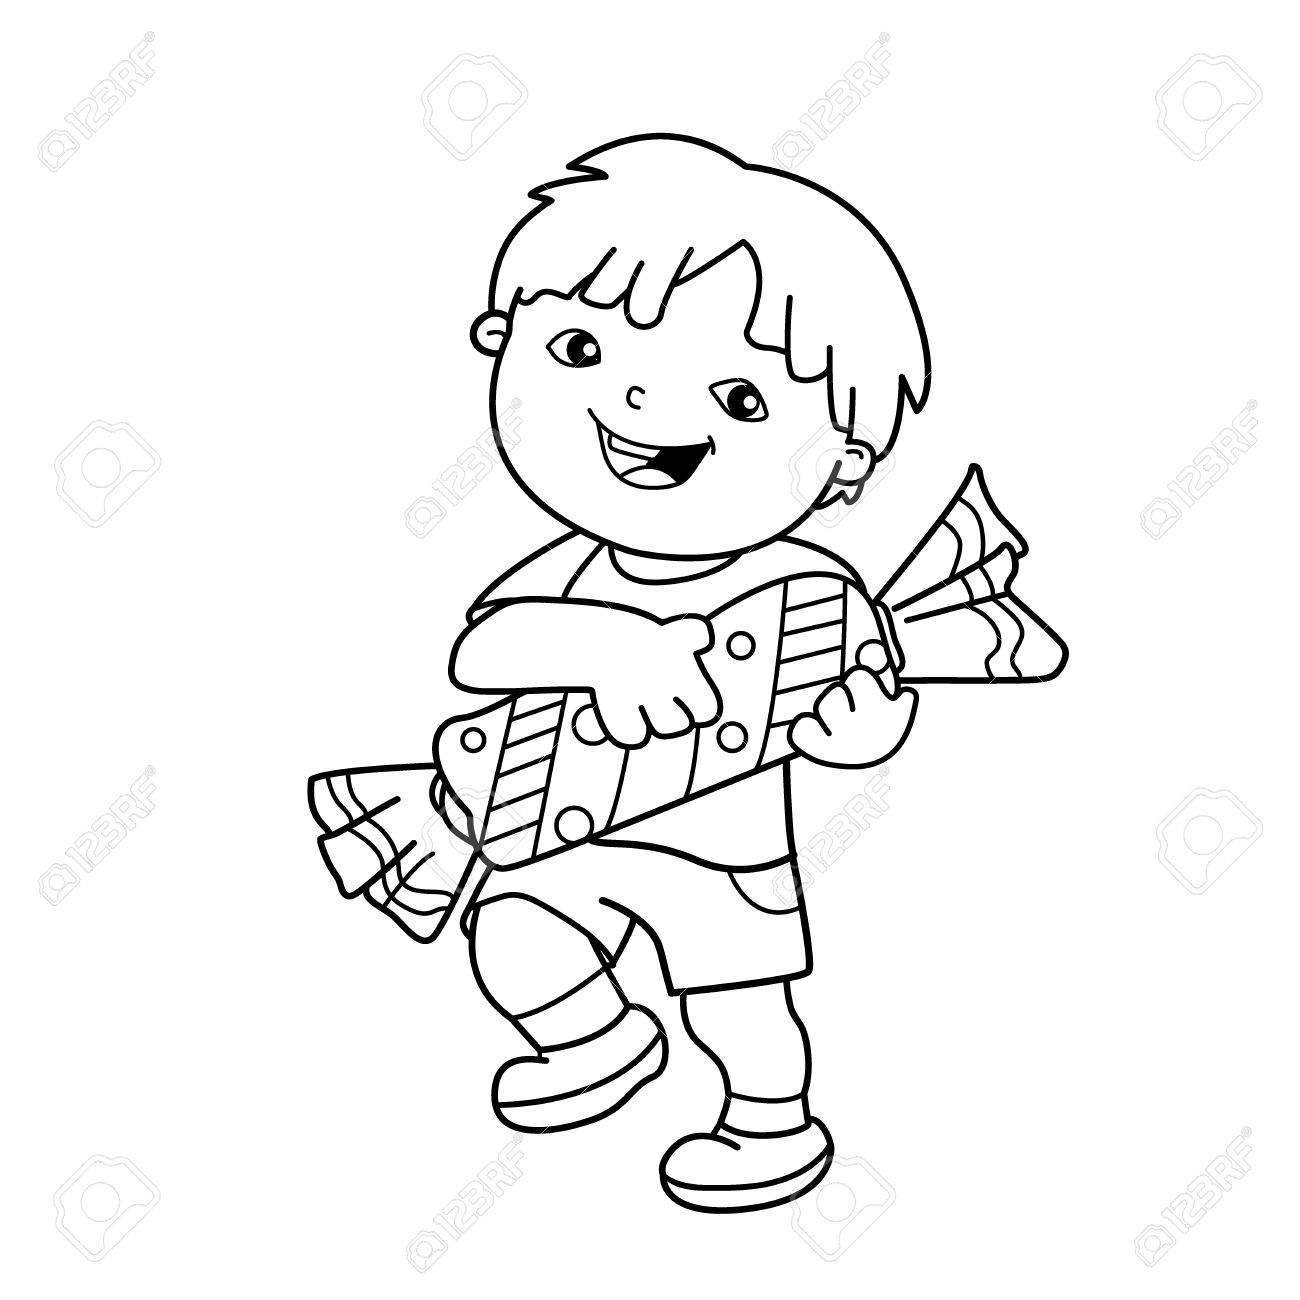 Coloring Page Outline Of Cartoon Boy With With Candy. Coloring ...